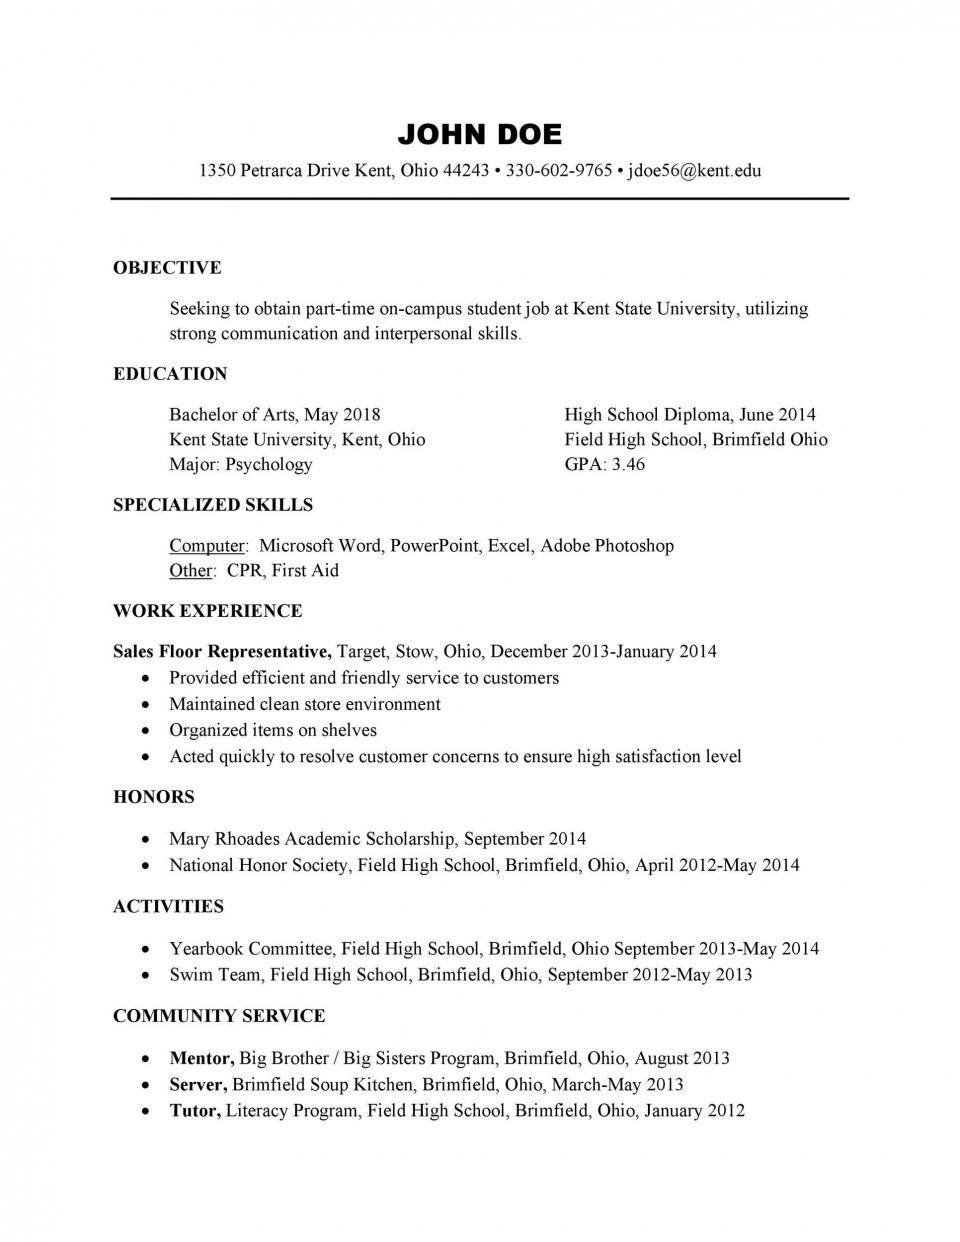 003 Marvelou Student Resume Template Word Free Highest Clarity  College Microsoft Download High School960